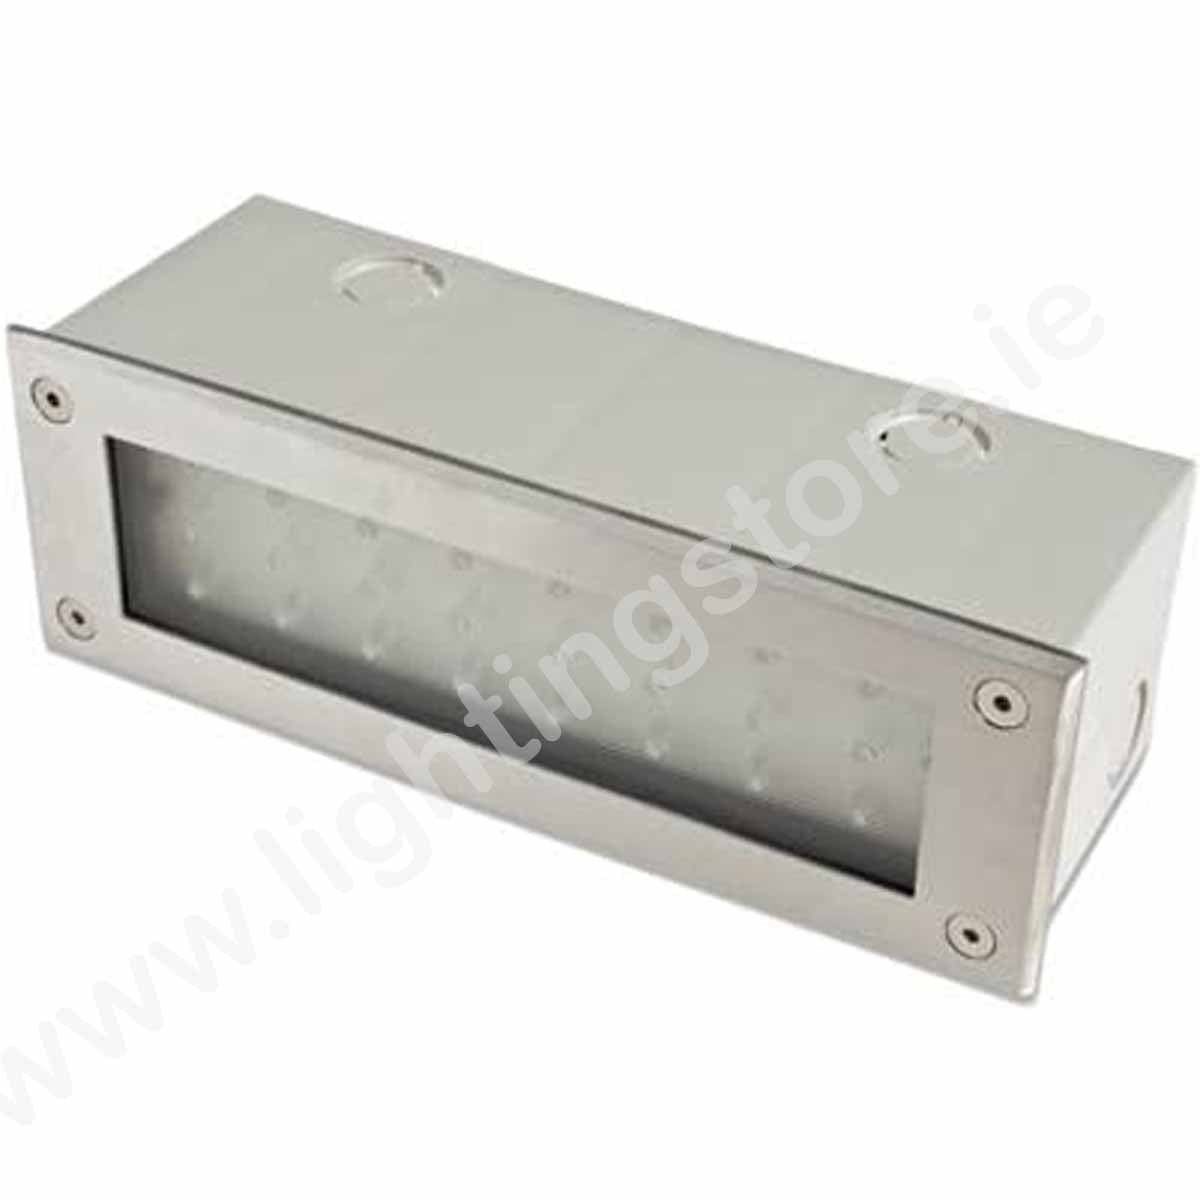 Robus RBR24LED-01 Bricklight 24 LEDs White